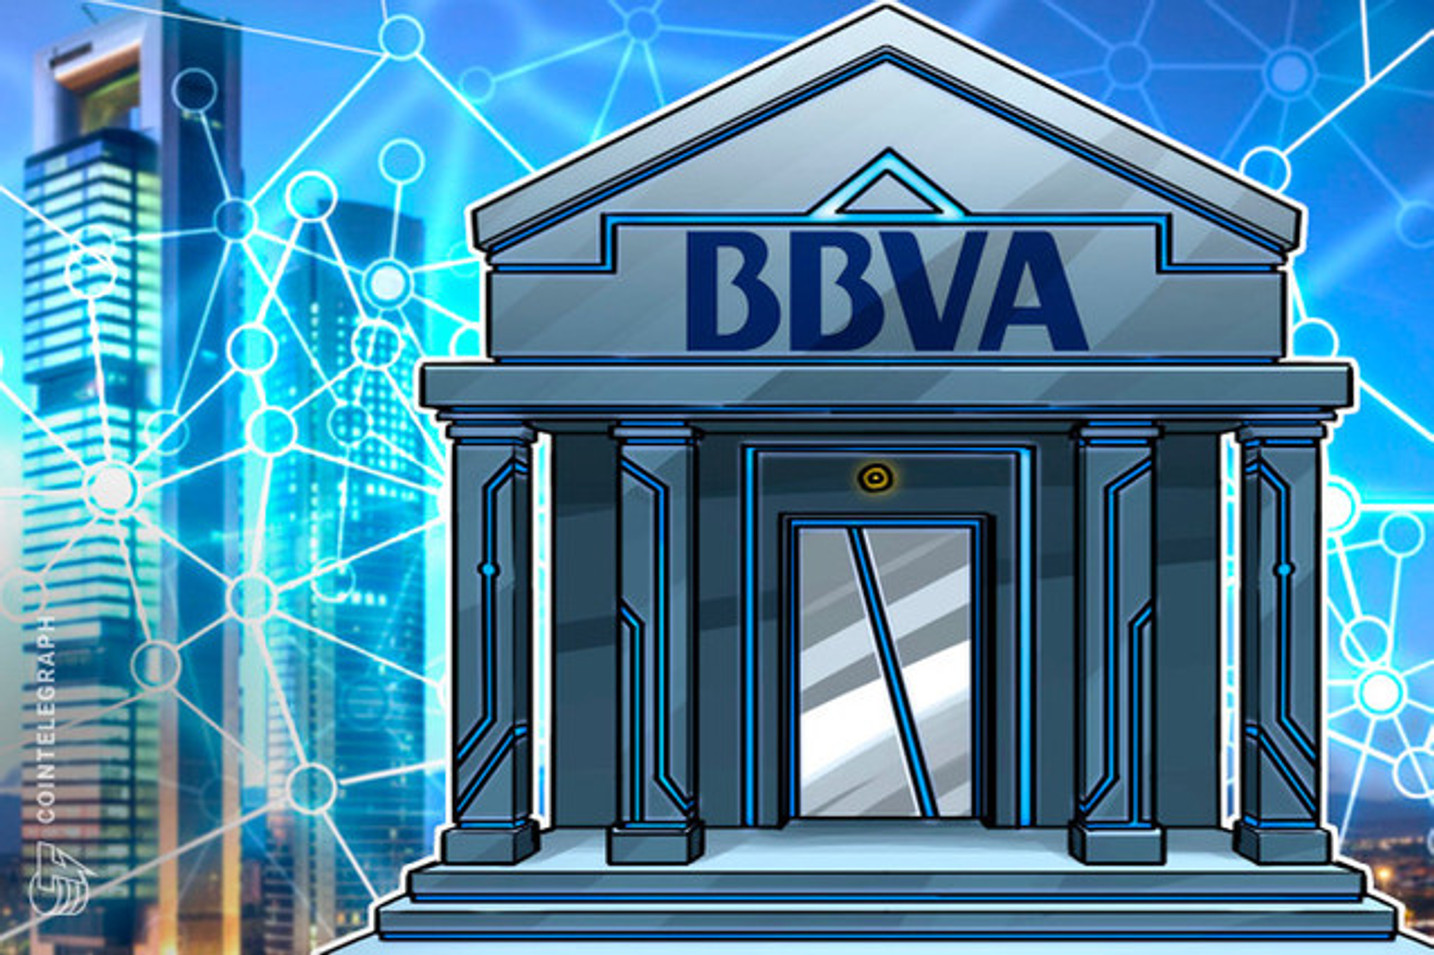 Bbva bitcoins buy bitcoins with credit card south africa